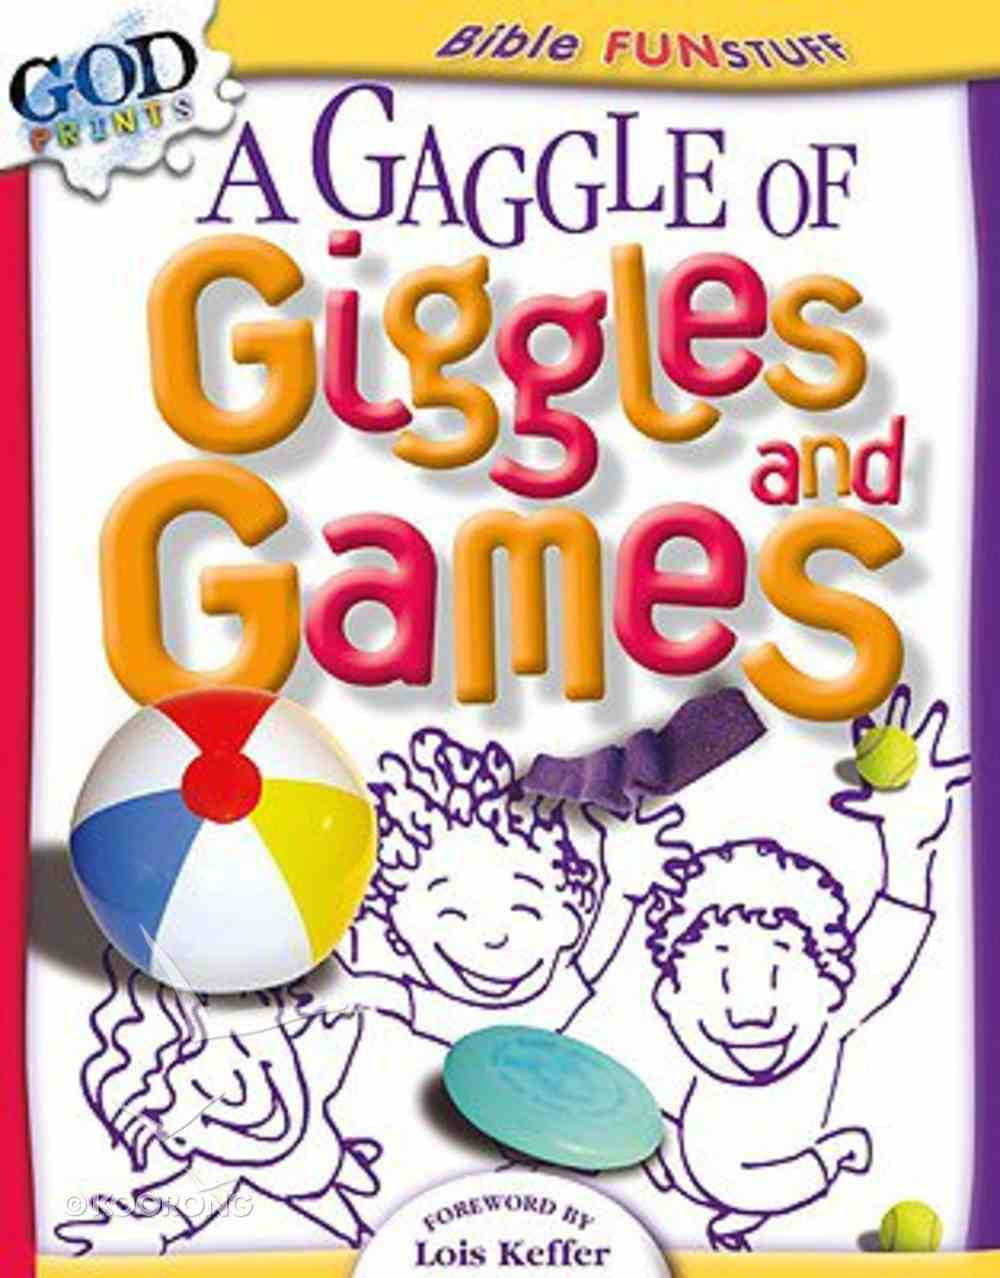 A Gaggle of Giggles and Games (Godprints Bible Fun Stuff Series) Paperback